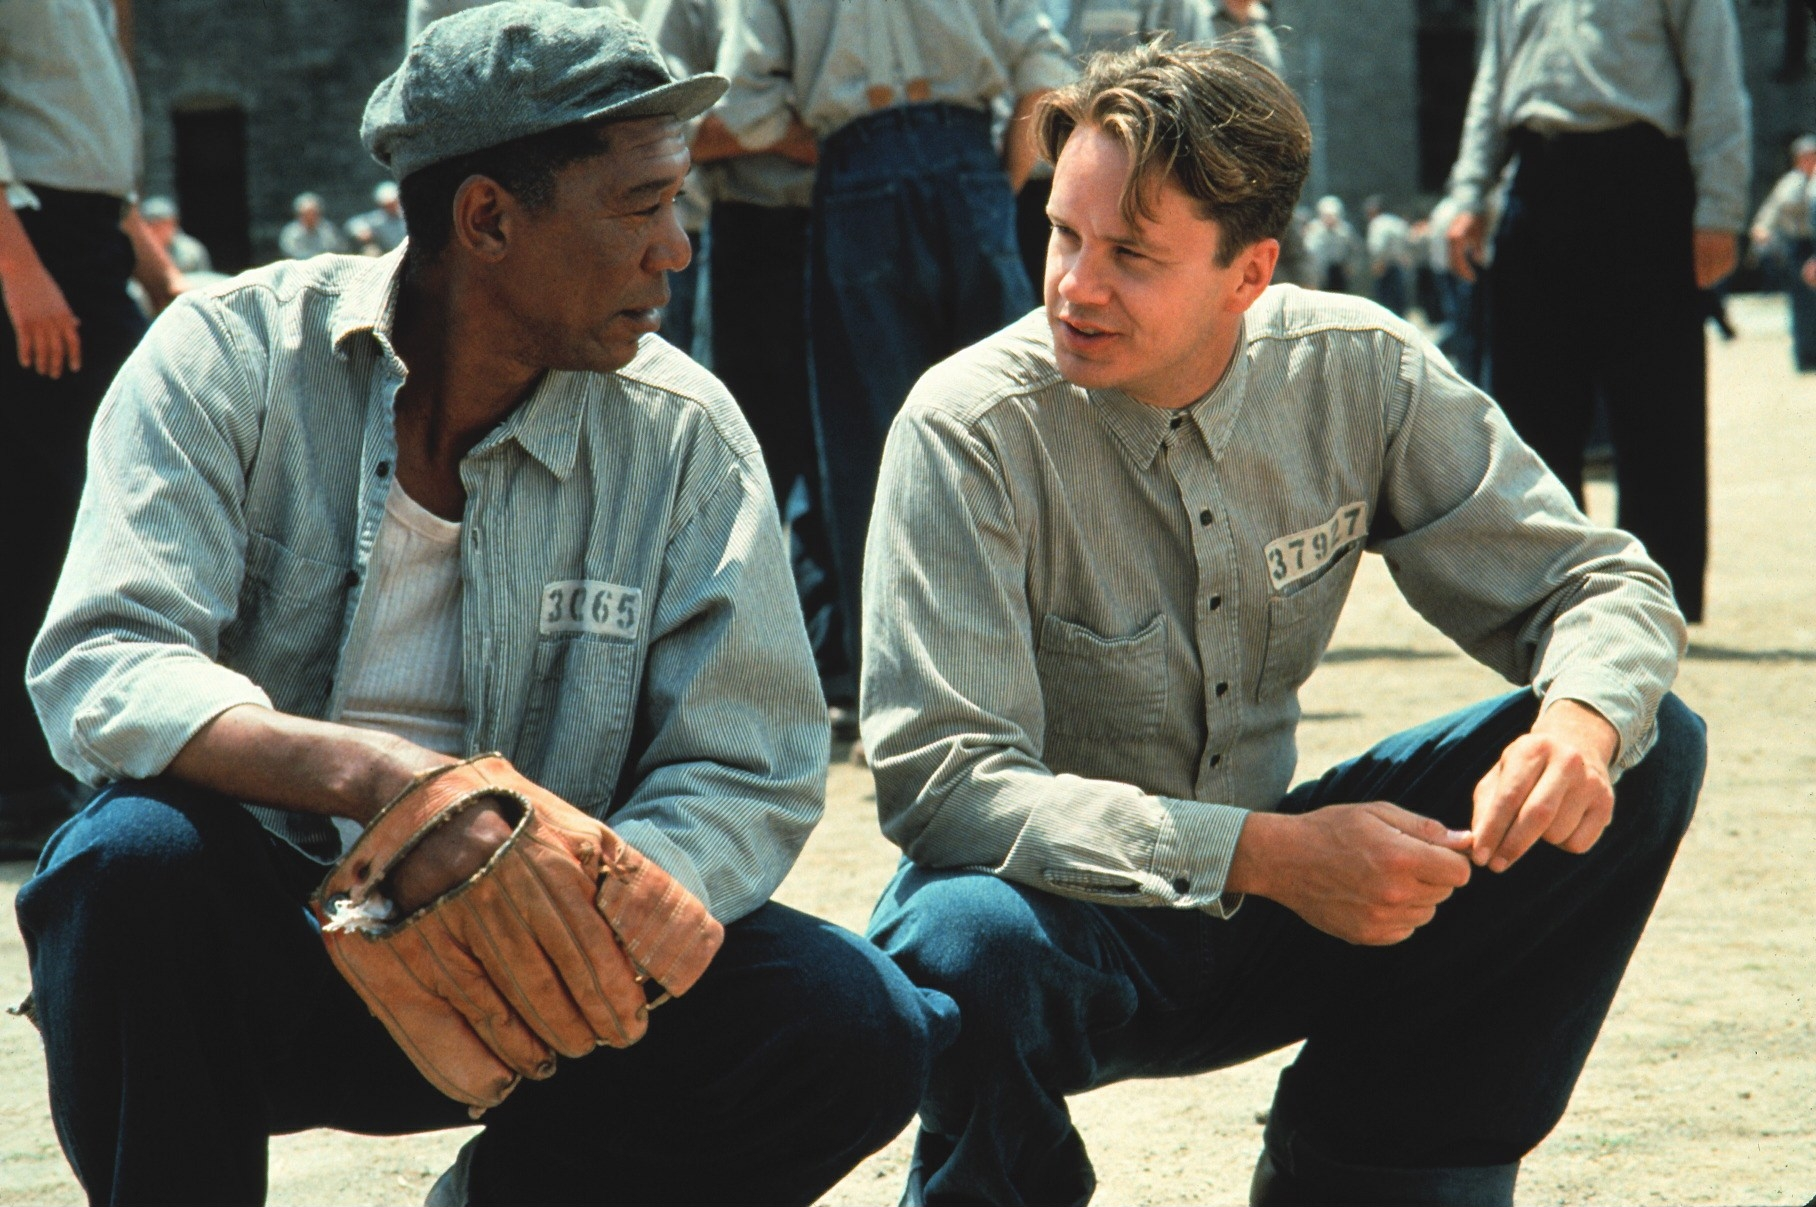 shawshank redemption by frank darabont 2 essay Frank darabont and shawshank redemption essay the warden in shawshank essay analyse how a character has been used to explore a key idea in your studied text.